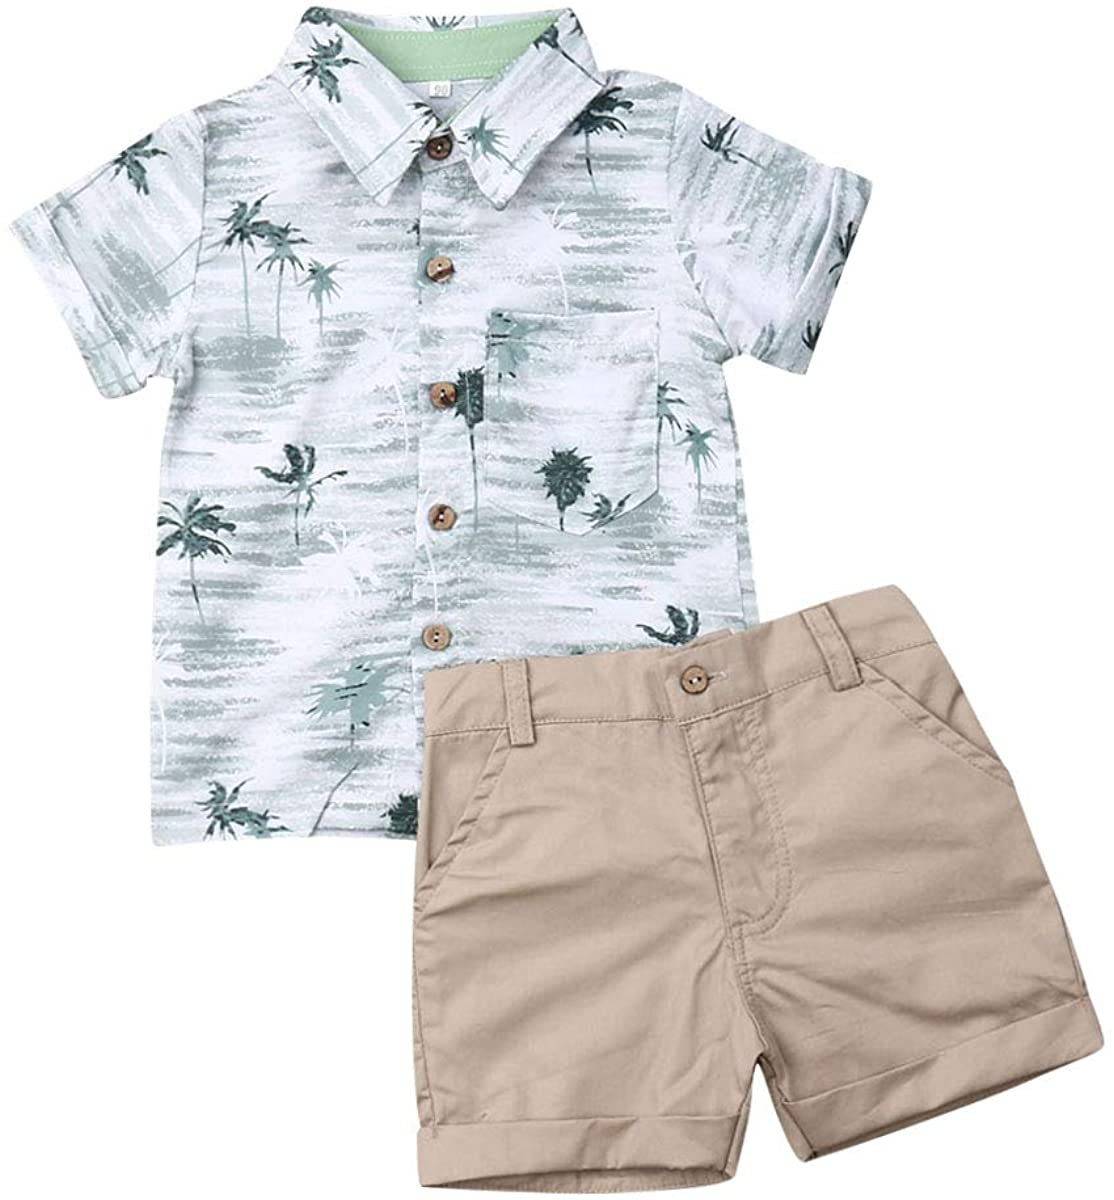 Baby Boys Clothes Kids Short Sleeve Button Down Plaid Shirts Tops Shorts Pants Toddler 2pcs Summer Outfits Set